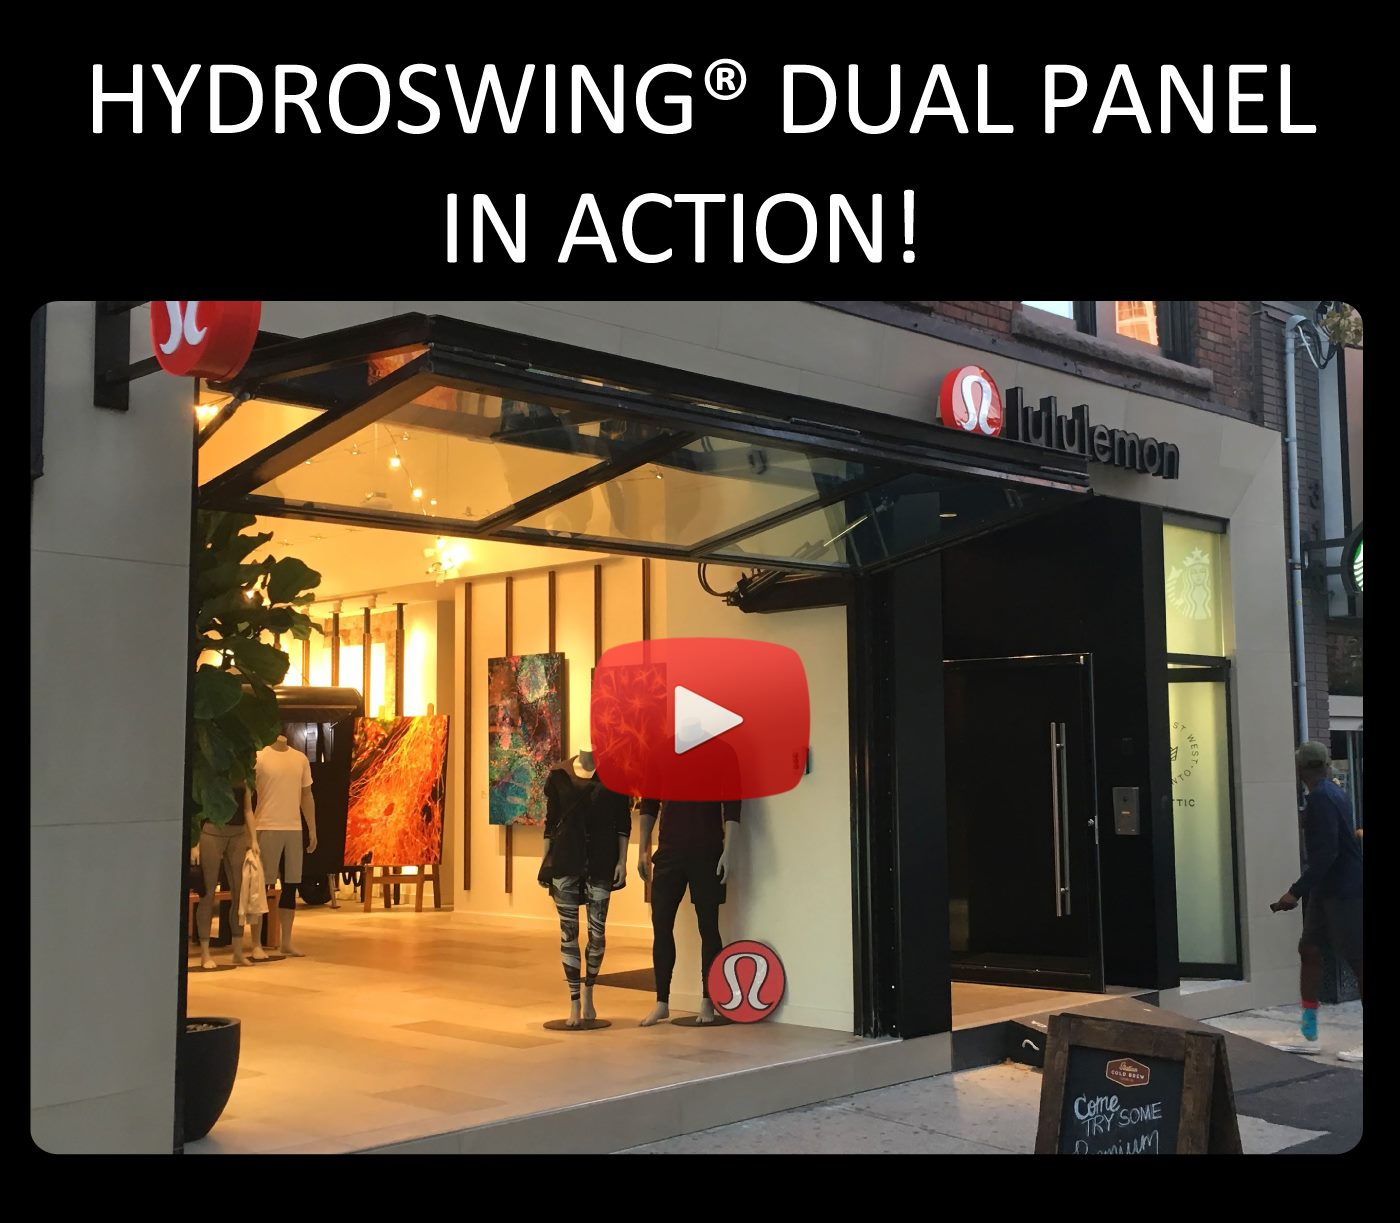 lulu lemon chooses hydroswing dual panel door for its store front